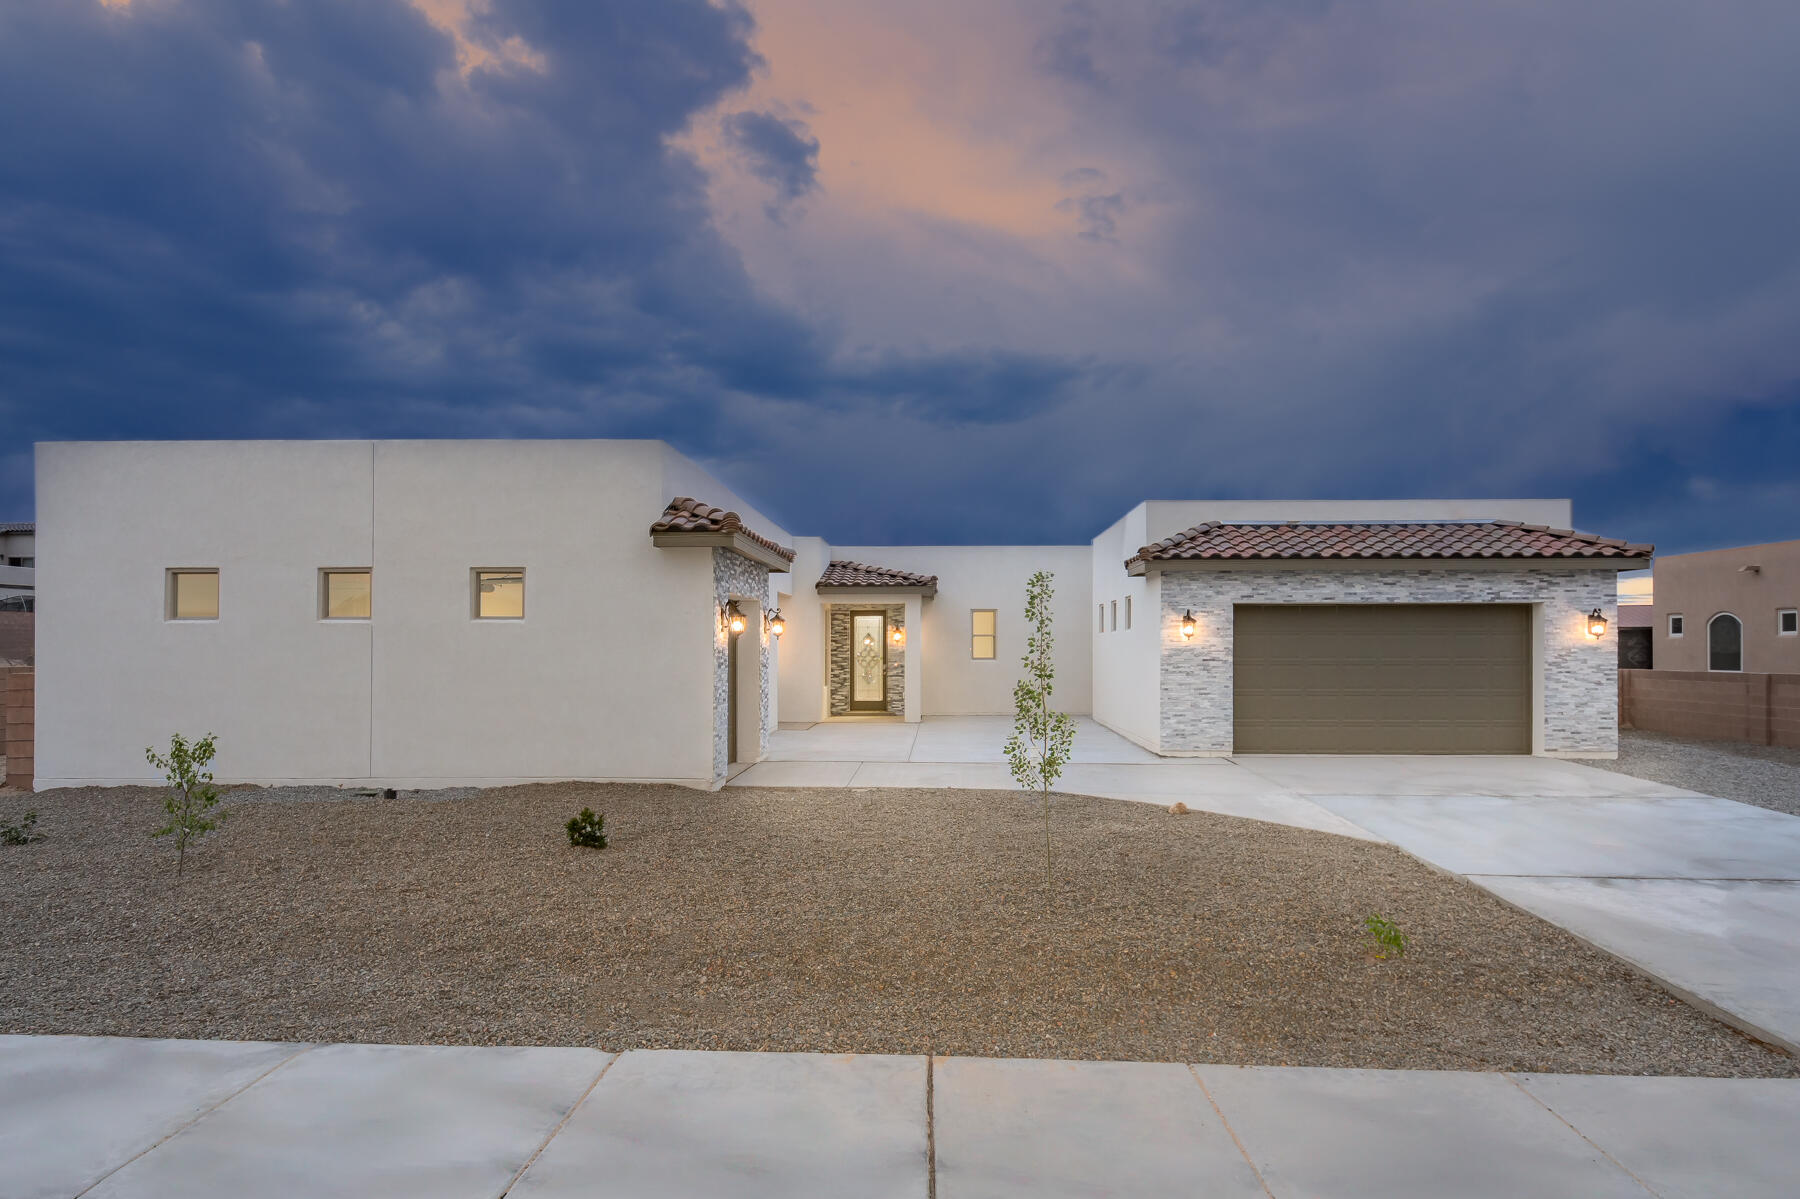 CUSTOM built home in desirable Petroglyph Estates subdivision-NEW CONSTRUCTION-backyard access/RV parking allowed-NO HOA -Perfect for multi-generational families. Has attached Casita with walk in closet and bathroom and works off its own split HVAC system. 3 bedrooms + office in the main house with Jack and Jill bathroom perfect for teens/kids, and masterbath boast huge garden tub with his/her closets and sinks. Quartz countertops throughout home, openfloor plan, large kitchen, 8foot doors, 3 car garage, 4bedroom/3.5 bath-Central air, coffered ceilings in living area.